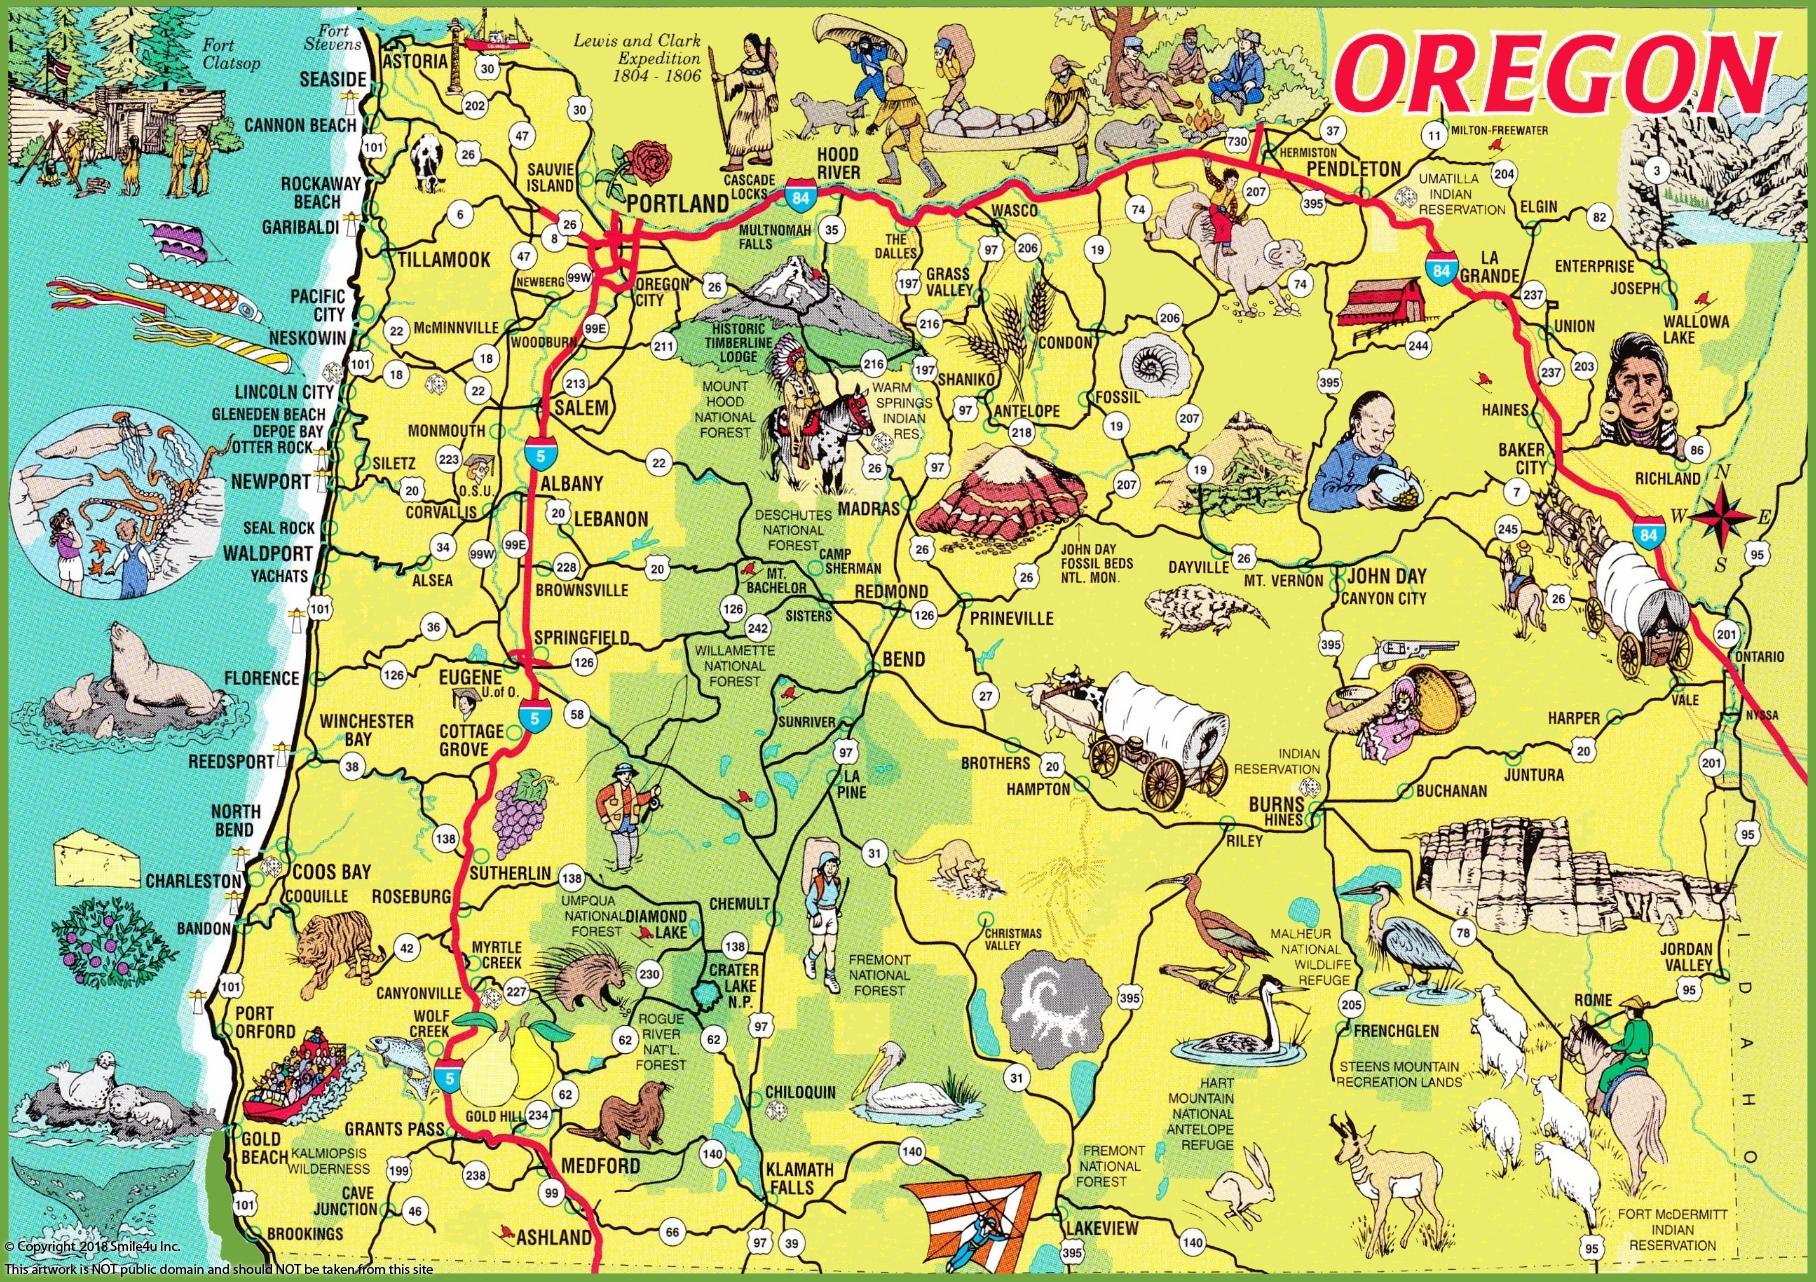 389865_watermarked_pictorial-travel-map-of-oregon.jpg